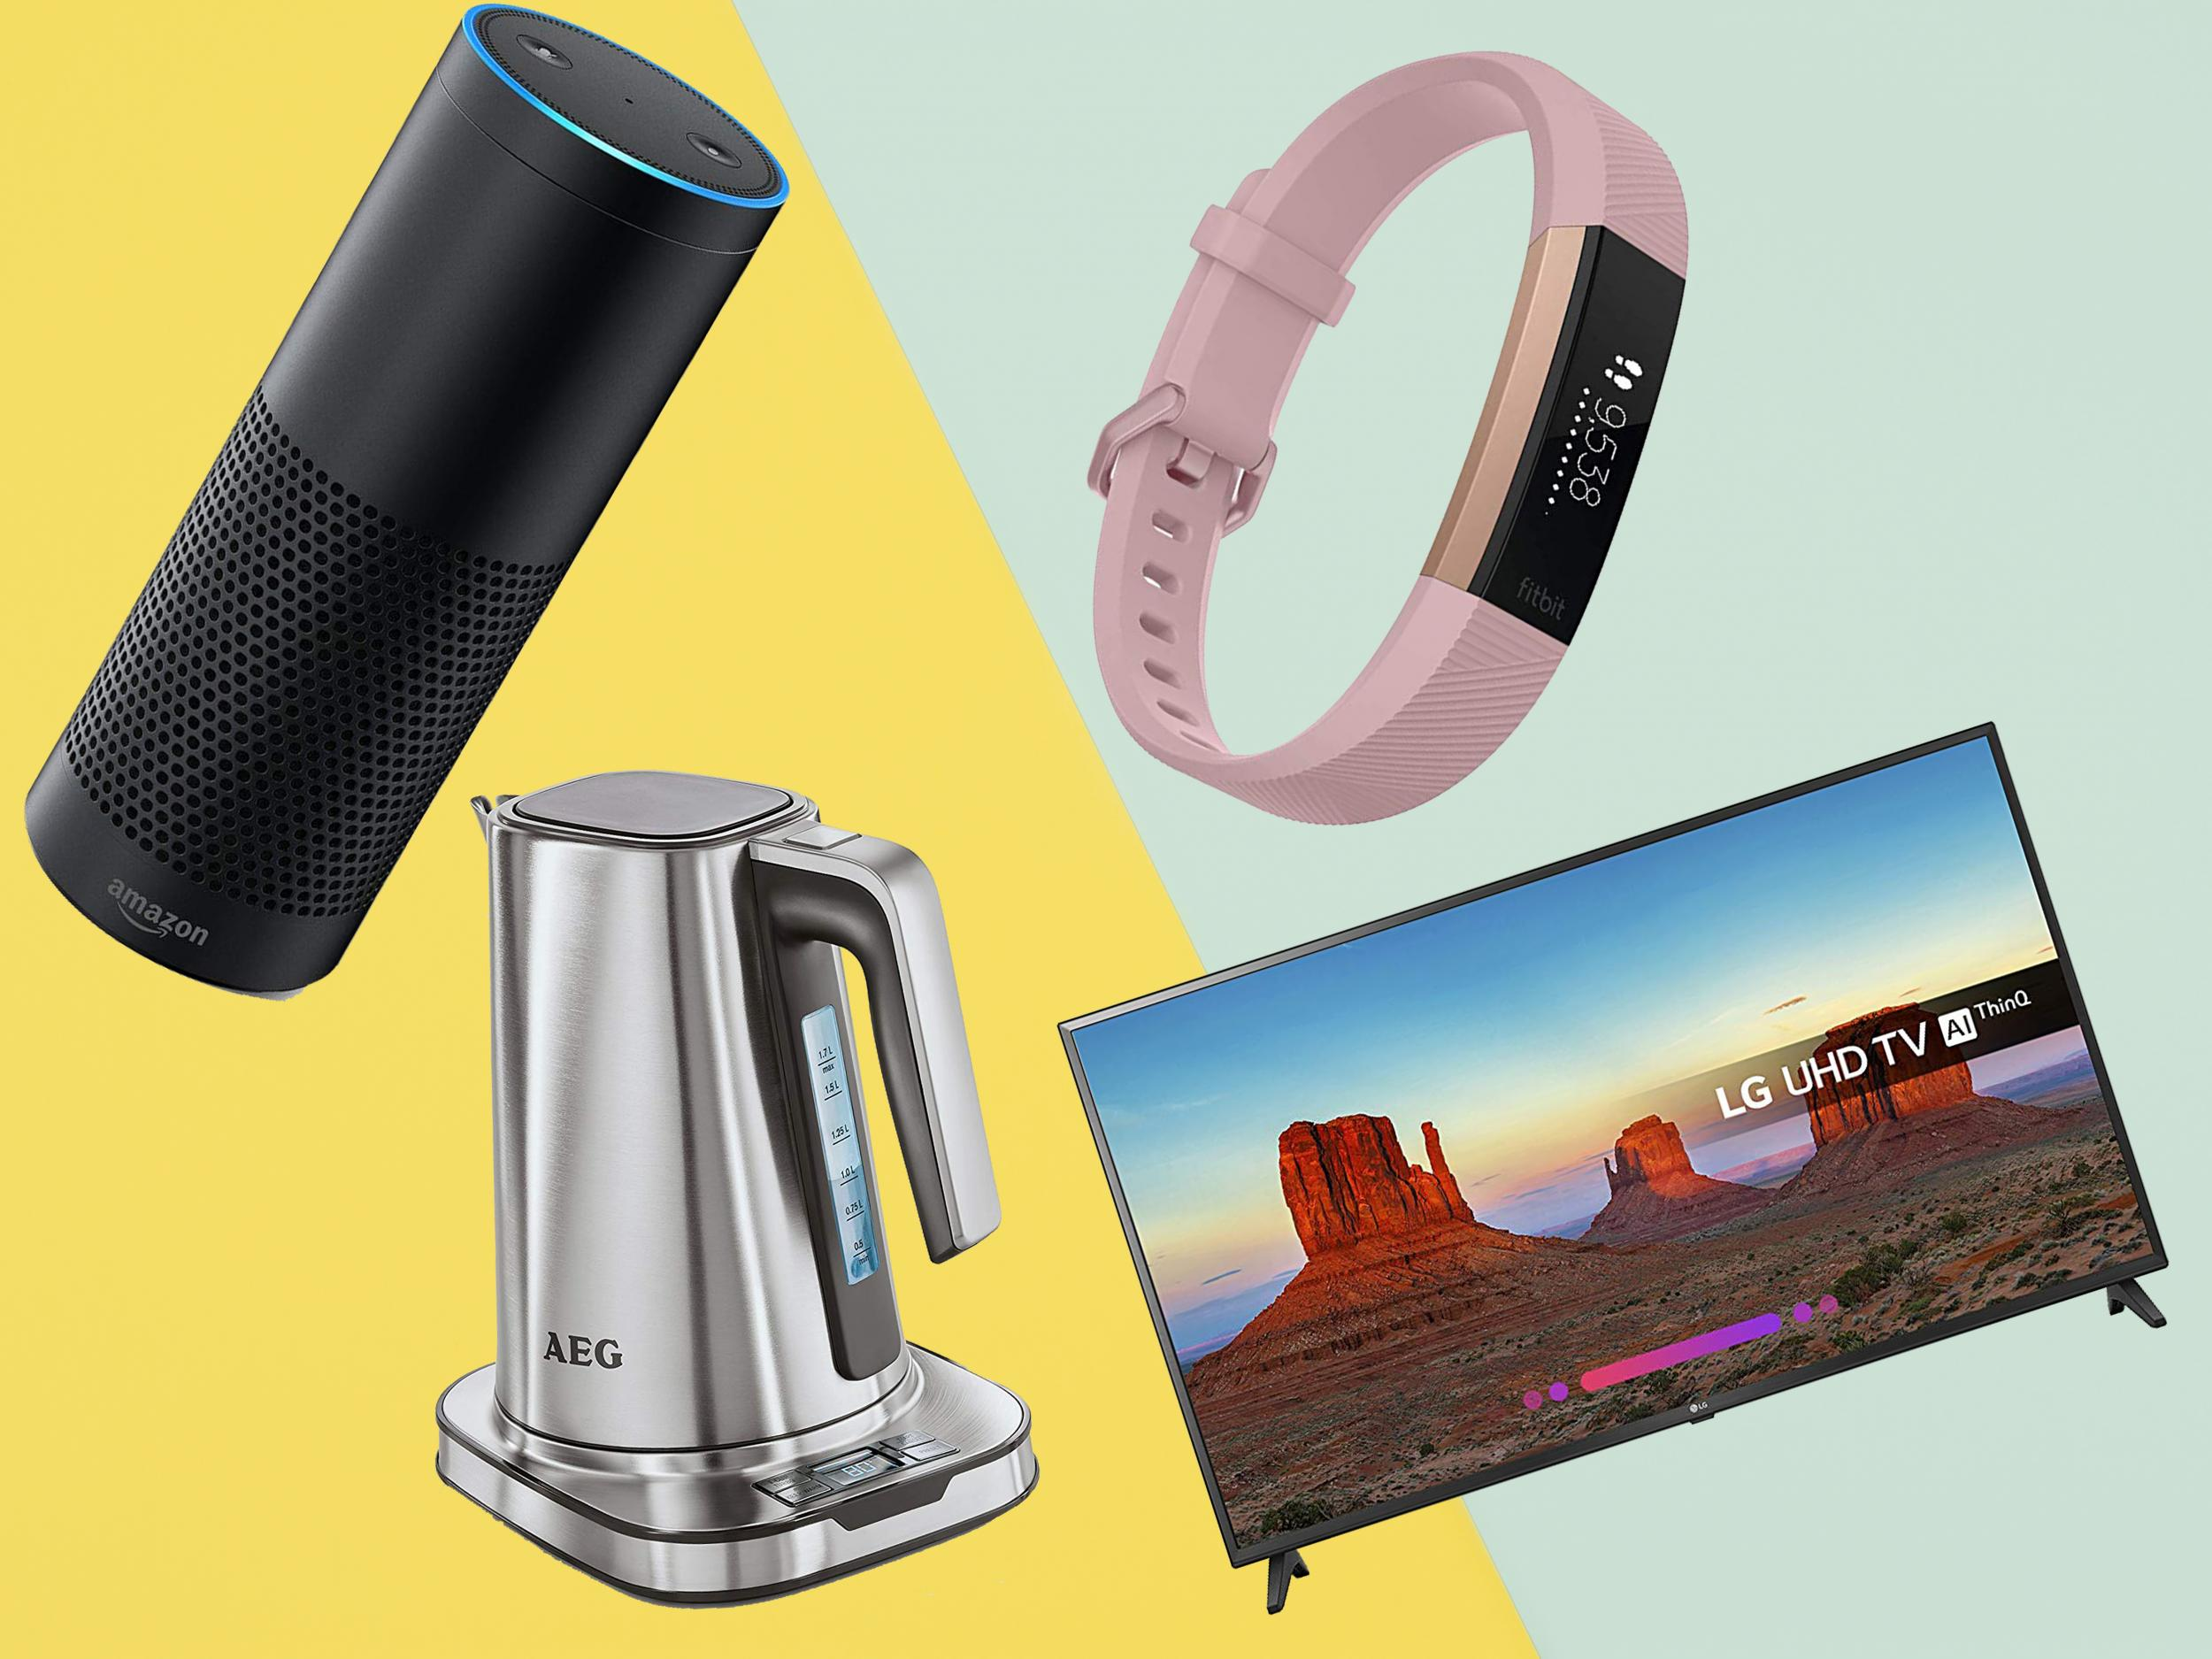 Best Amazon spring sale deals including smart speakers, mattresses and TVs